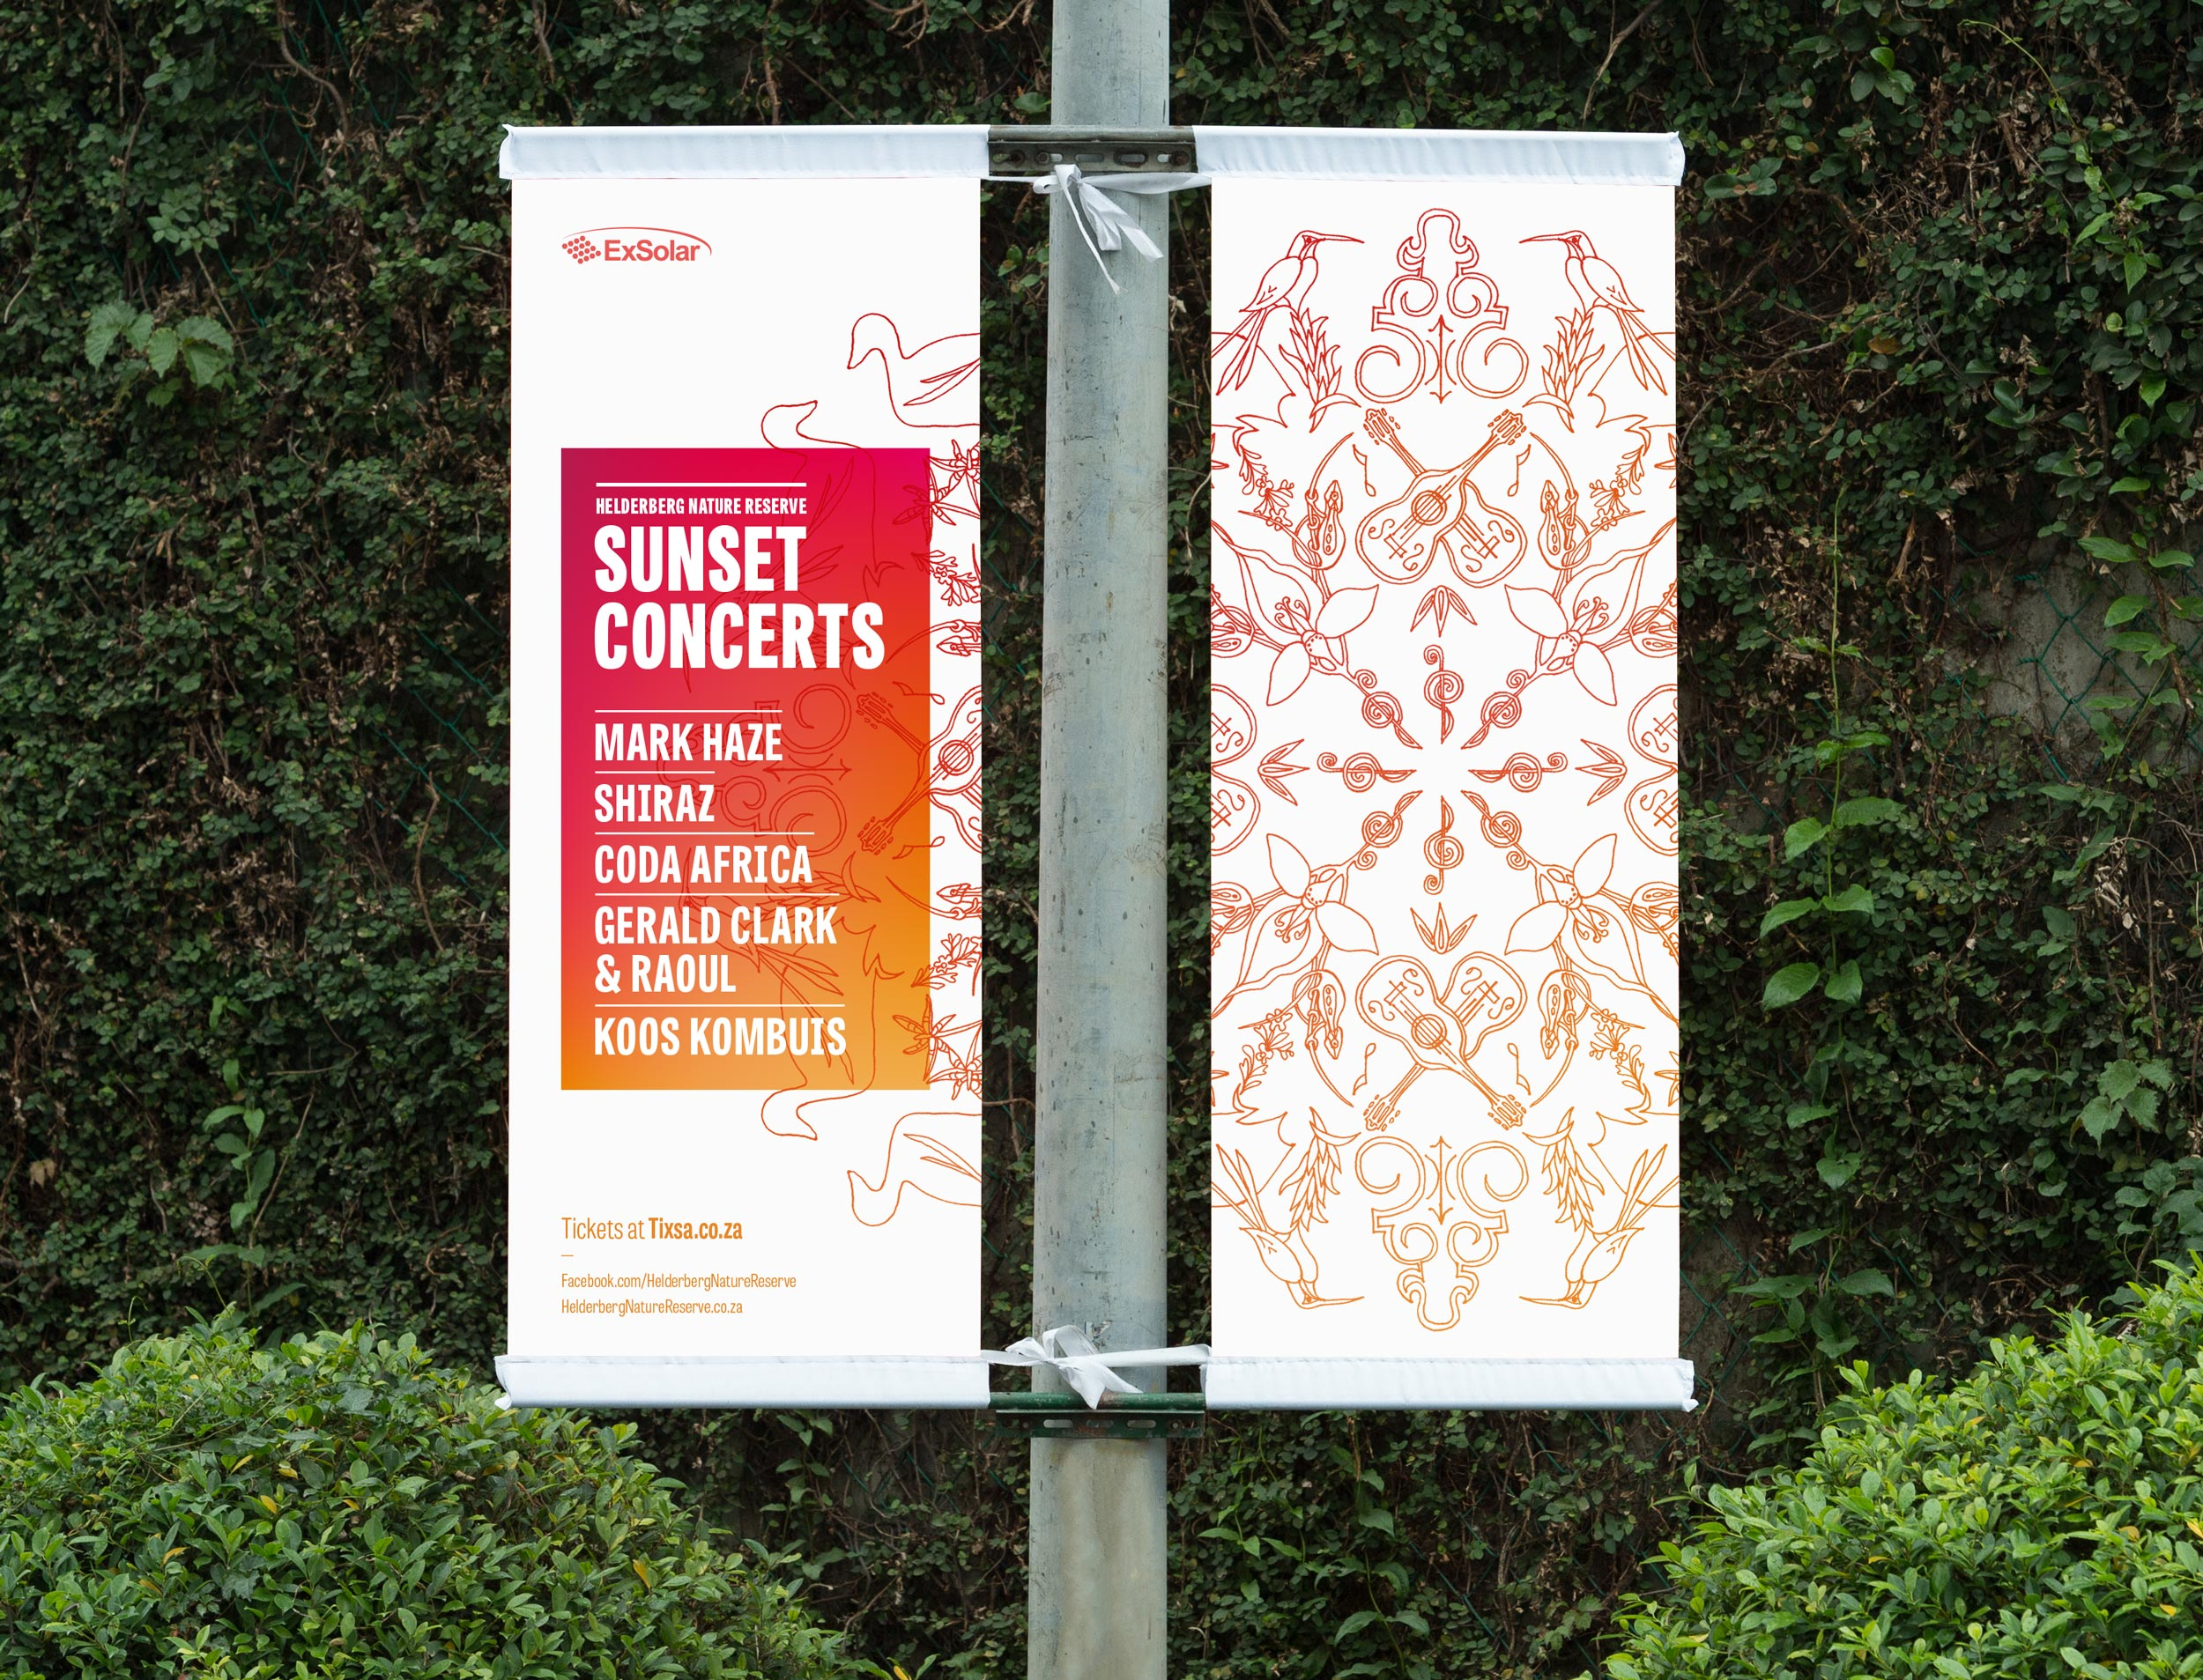 Event banners for the Helderberg Nature Reserve Sunset Concerts – by Ian Whalley